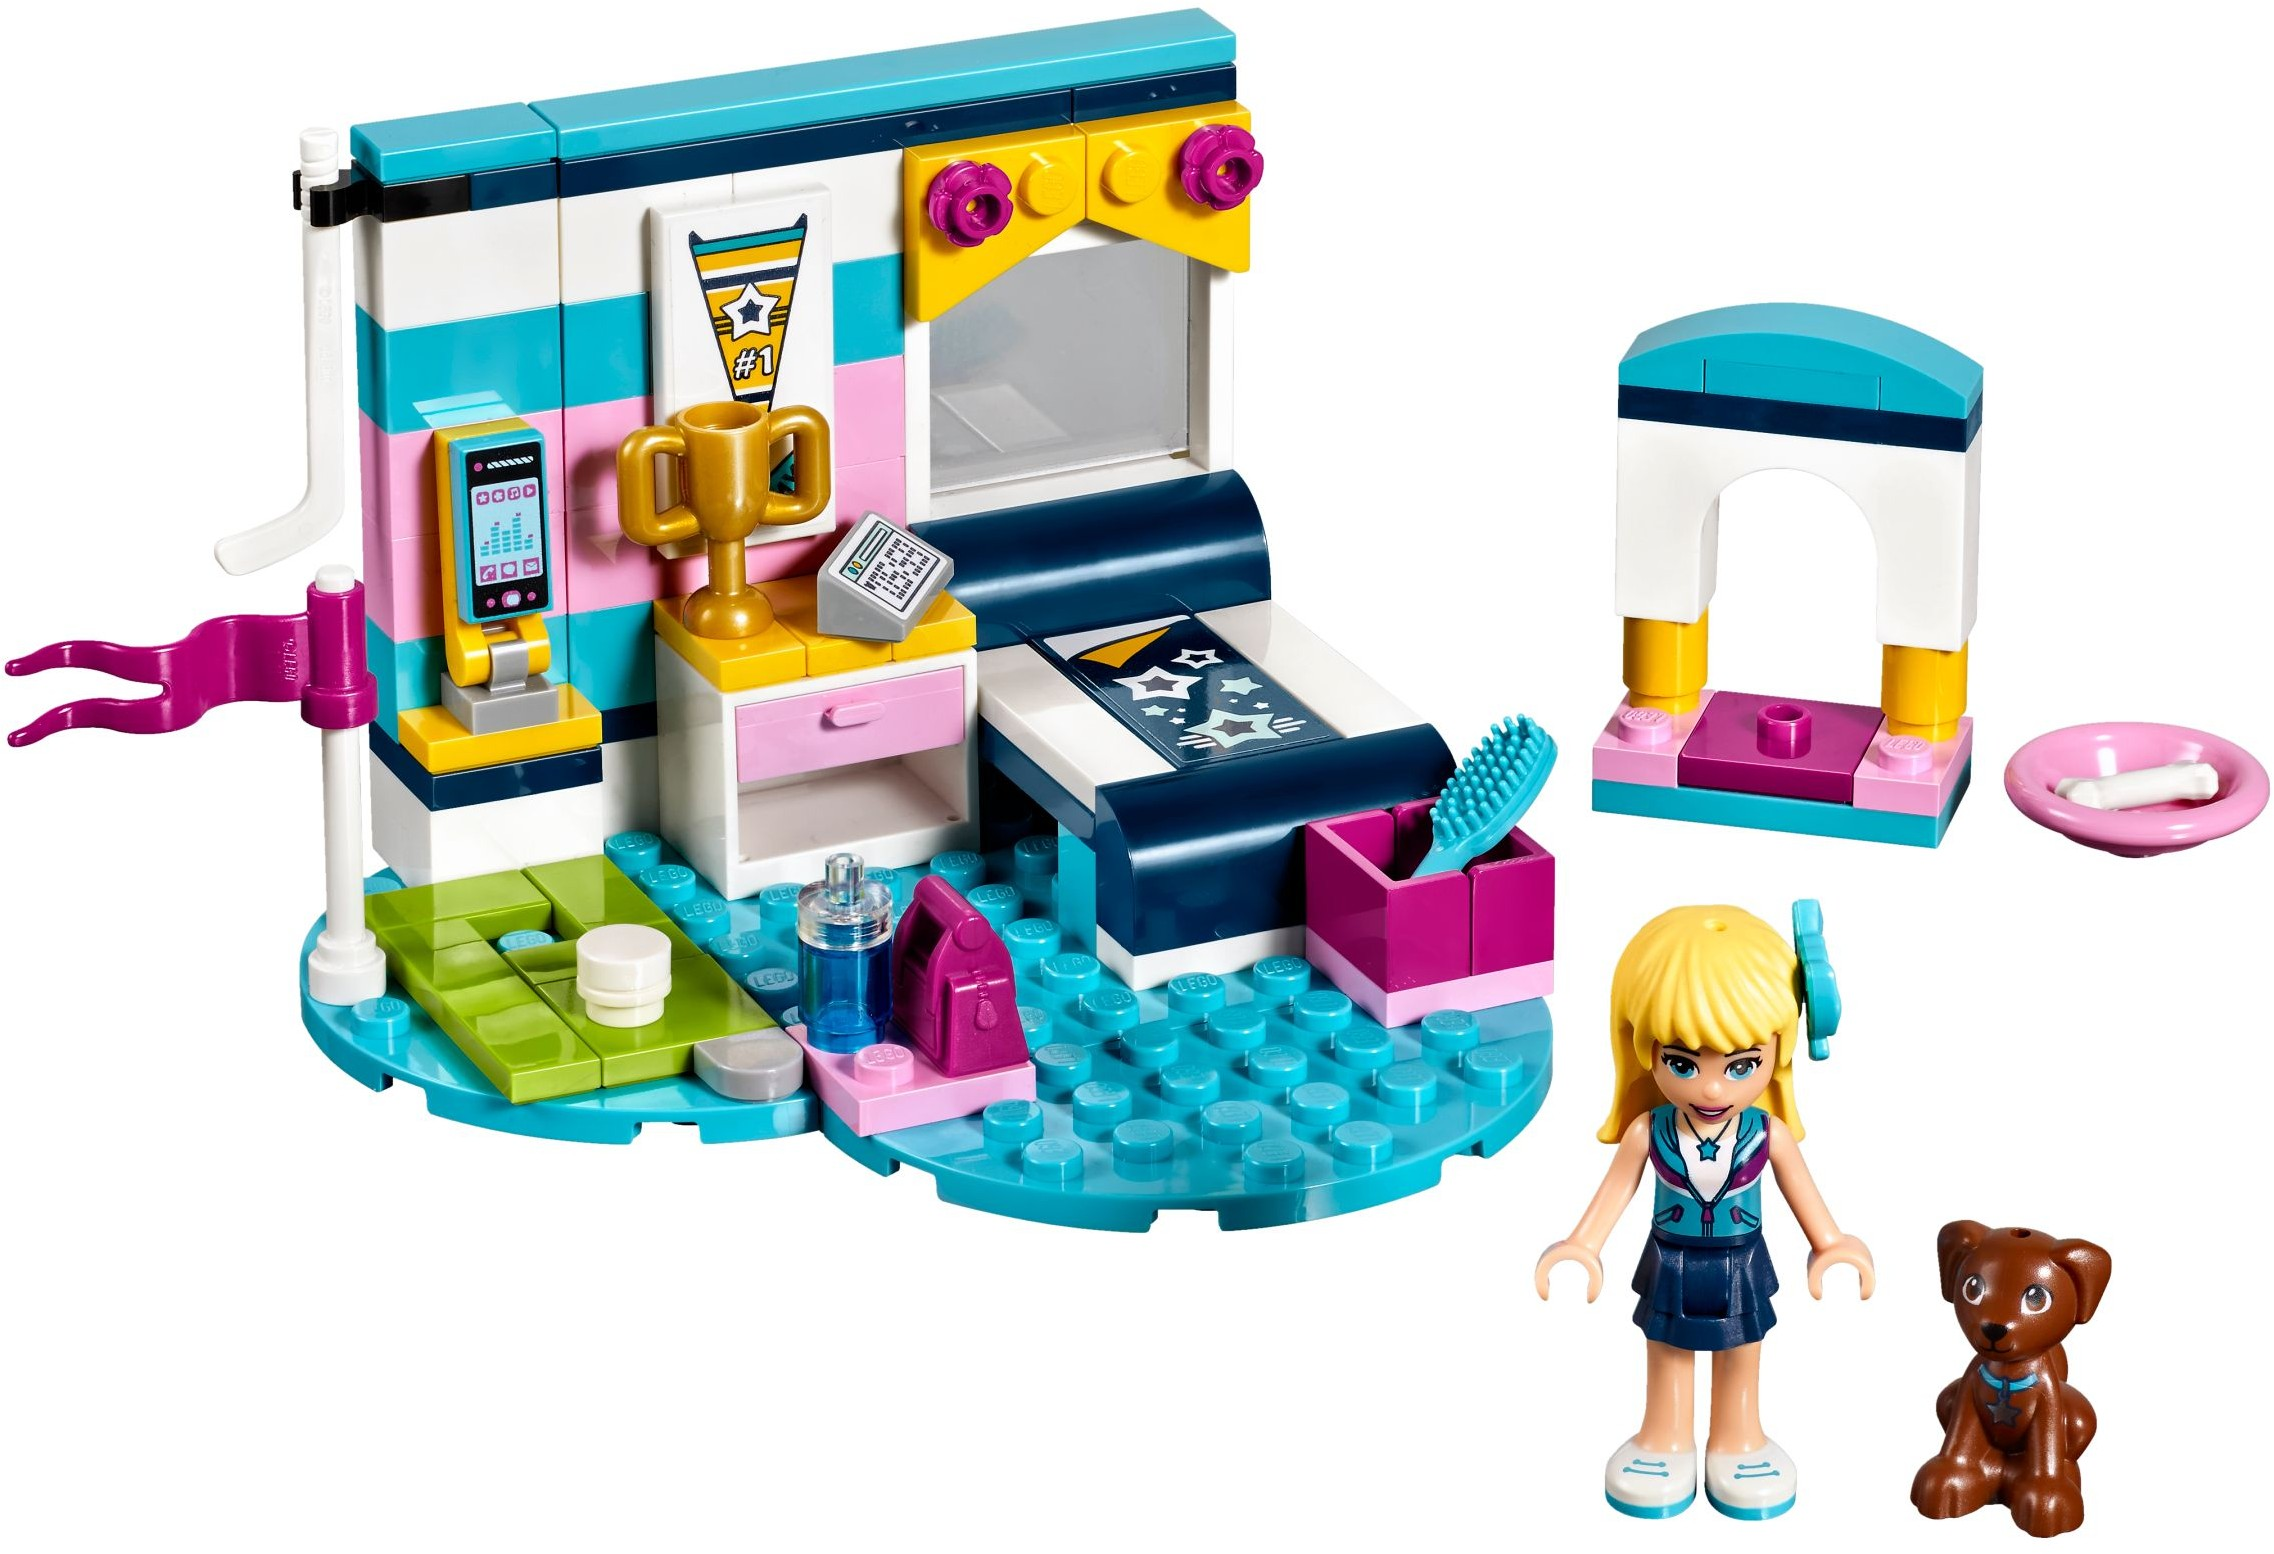 Lego Friends Sets 41328 Stephanies Bedroom New